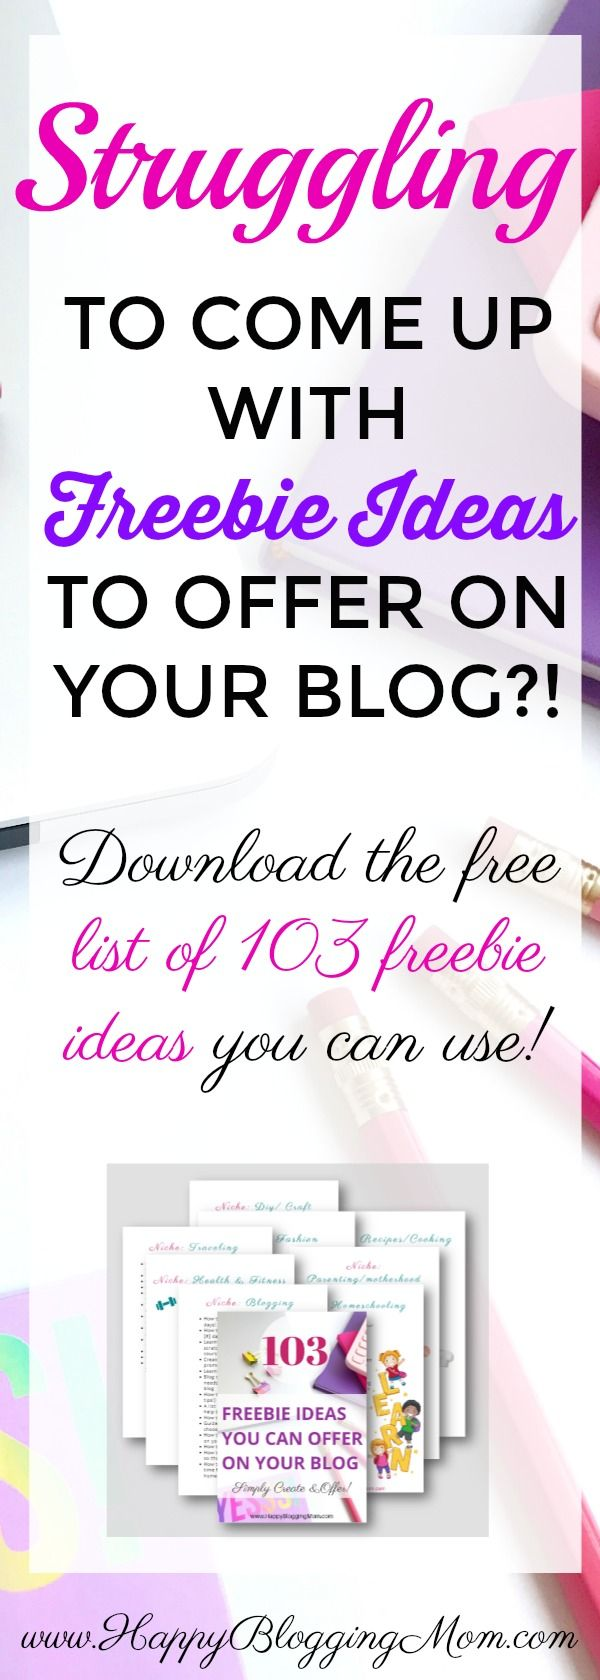 Need help creating a freebie offer for your blog? Don't know which lead magnet to make? Check out this EPIC list of 103 freebies you can create! Download for FREE! Yay!b